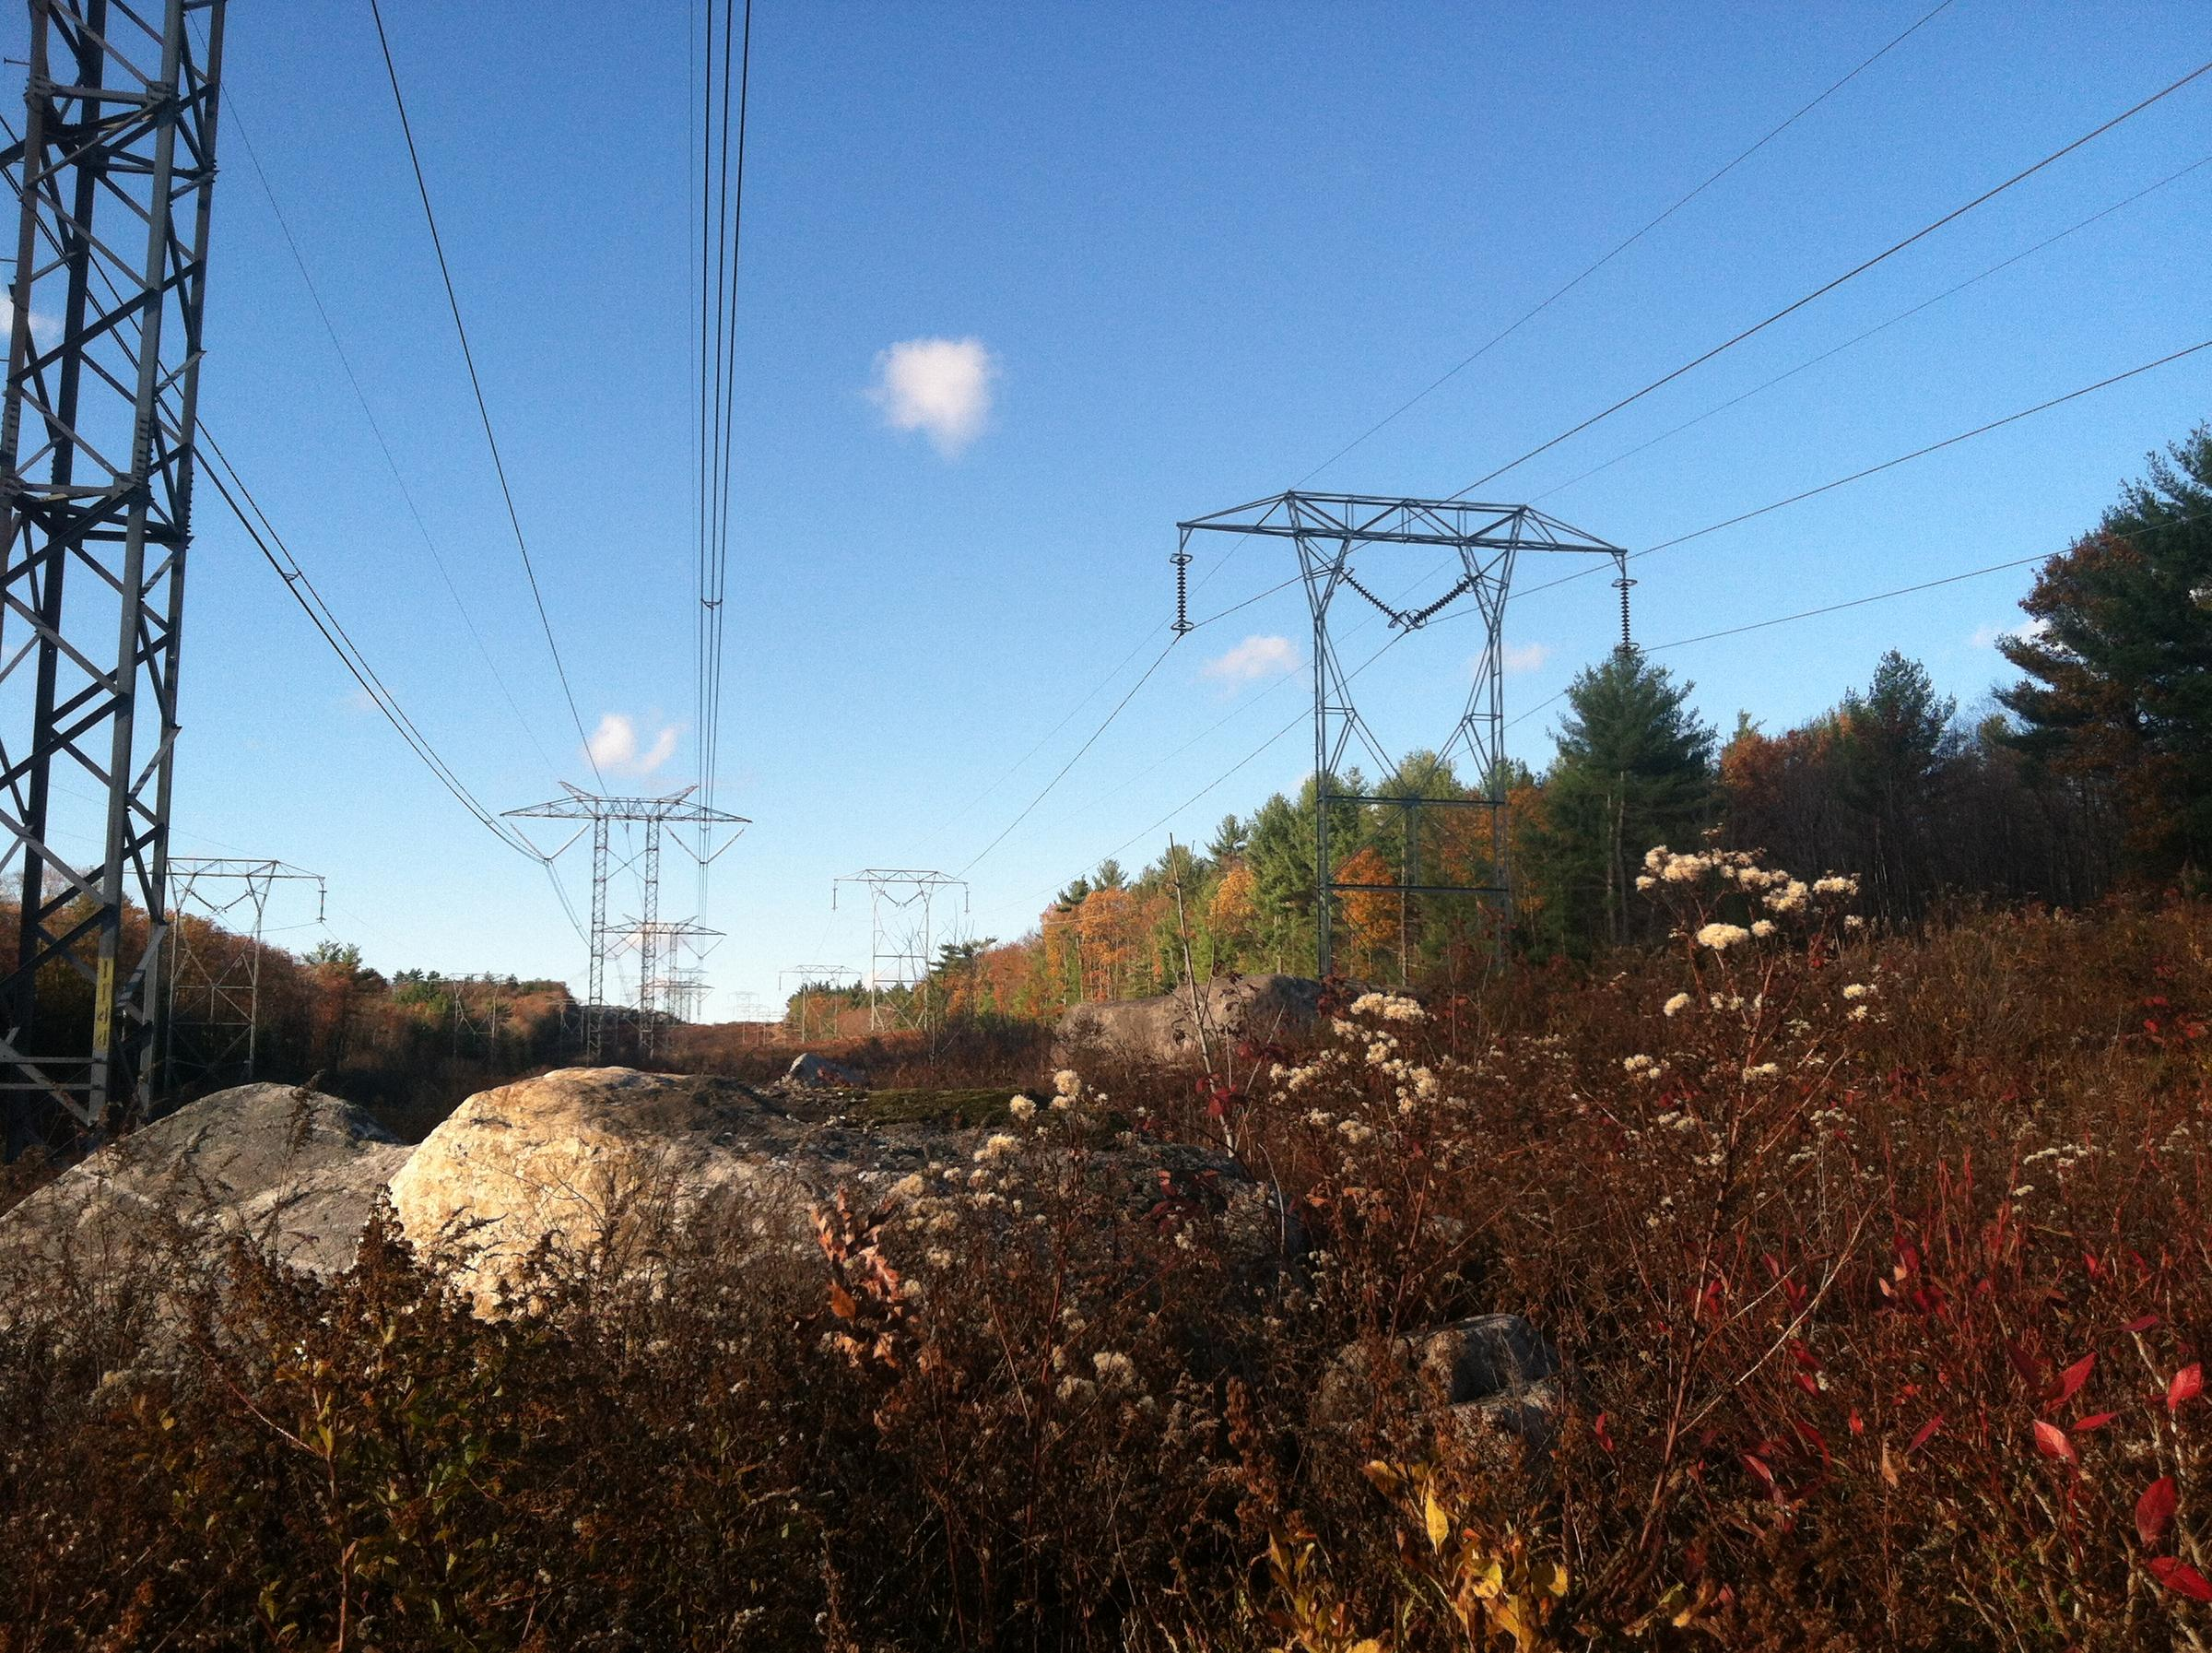 Drawn power line power grid HVDC N Power Push: 's